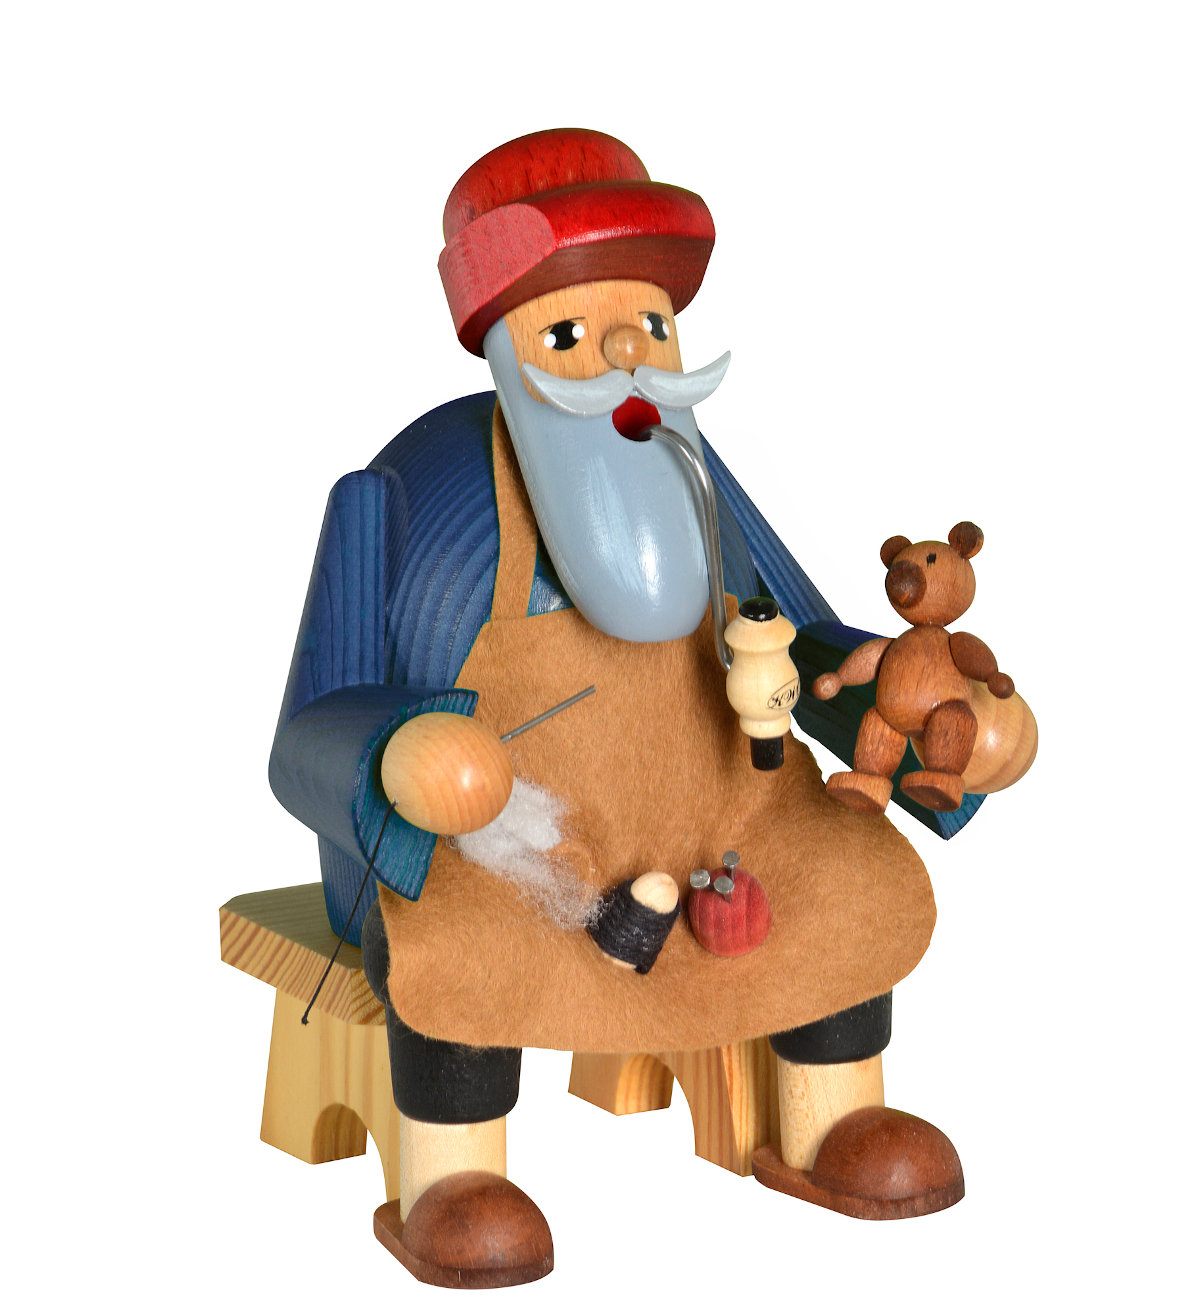 21130 Sitting Teddy Bear Maker